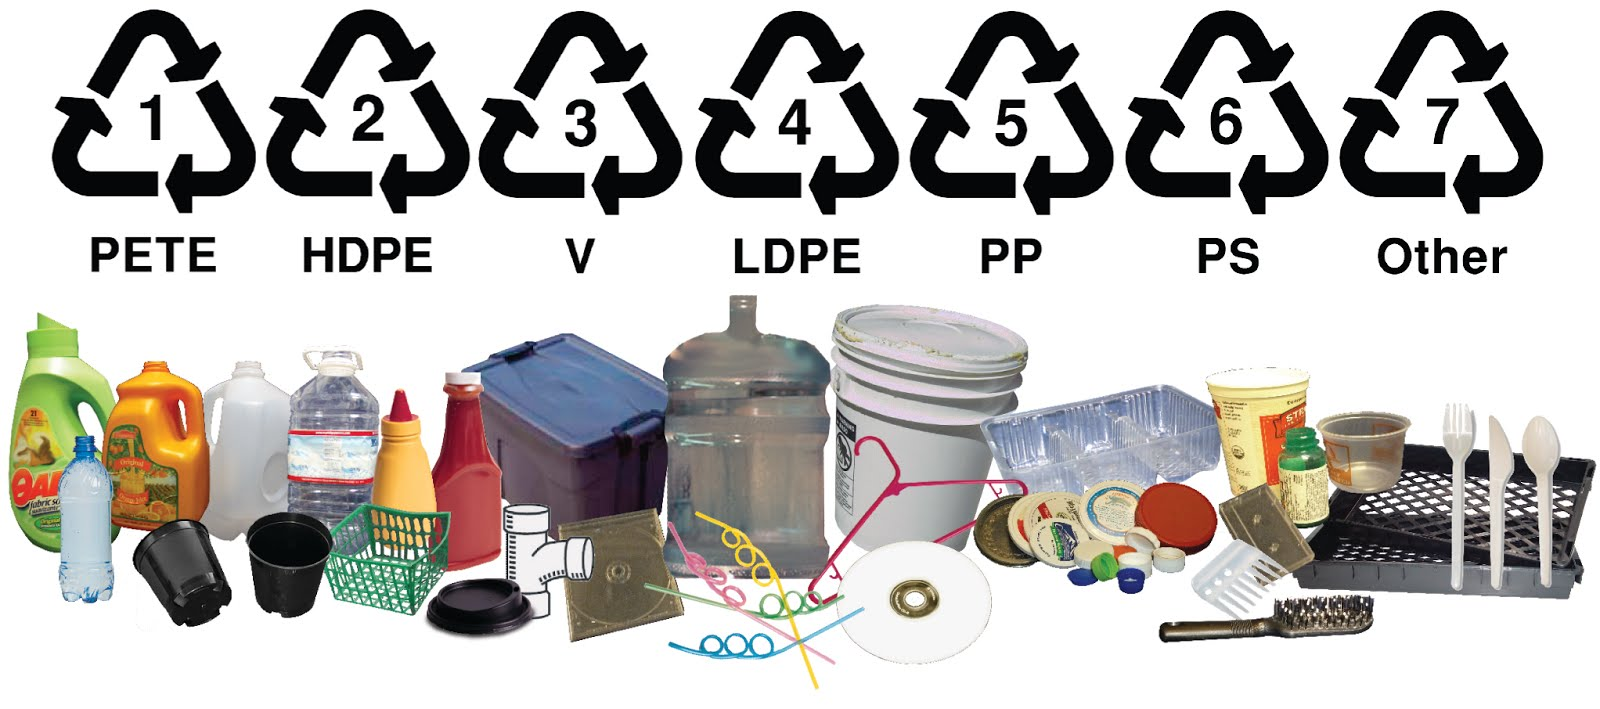 The greenbox ny blog recycle by numbers as fellow gung ho greenies we bet youre no stranger to the recycling symbols imprinted beneath your plastic purchases v ps 6 hdpe biocorpaavc